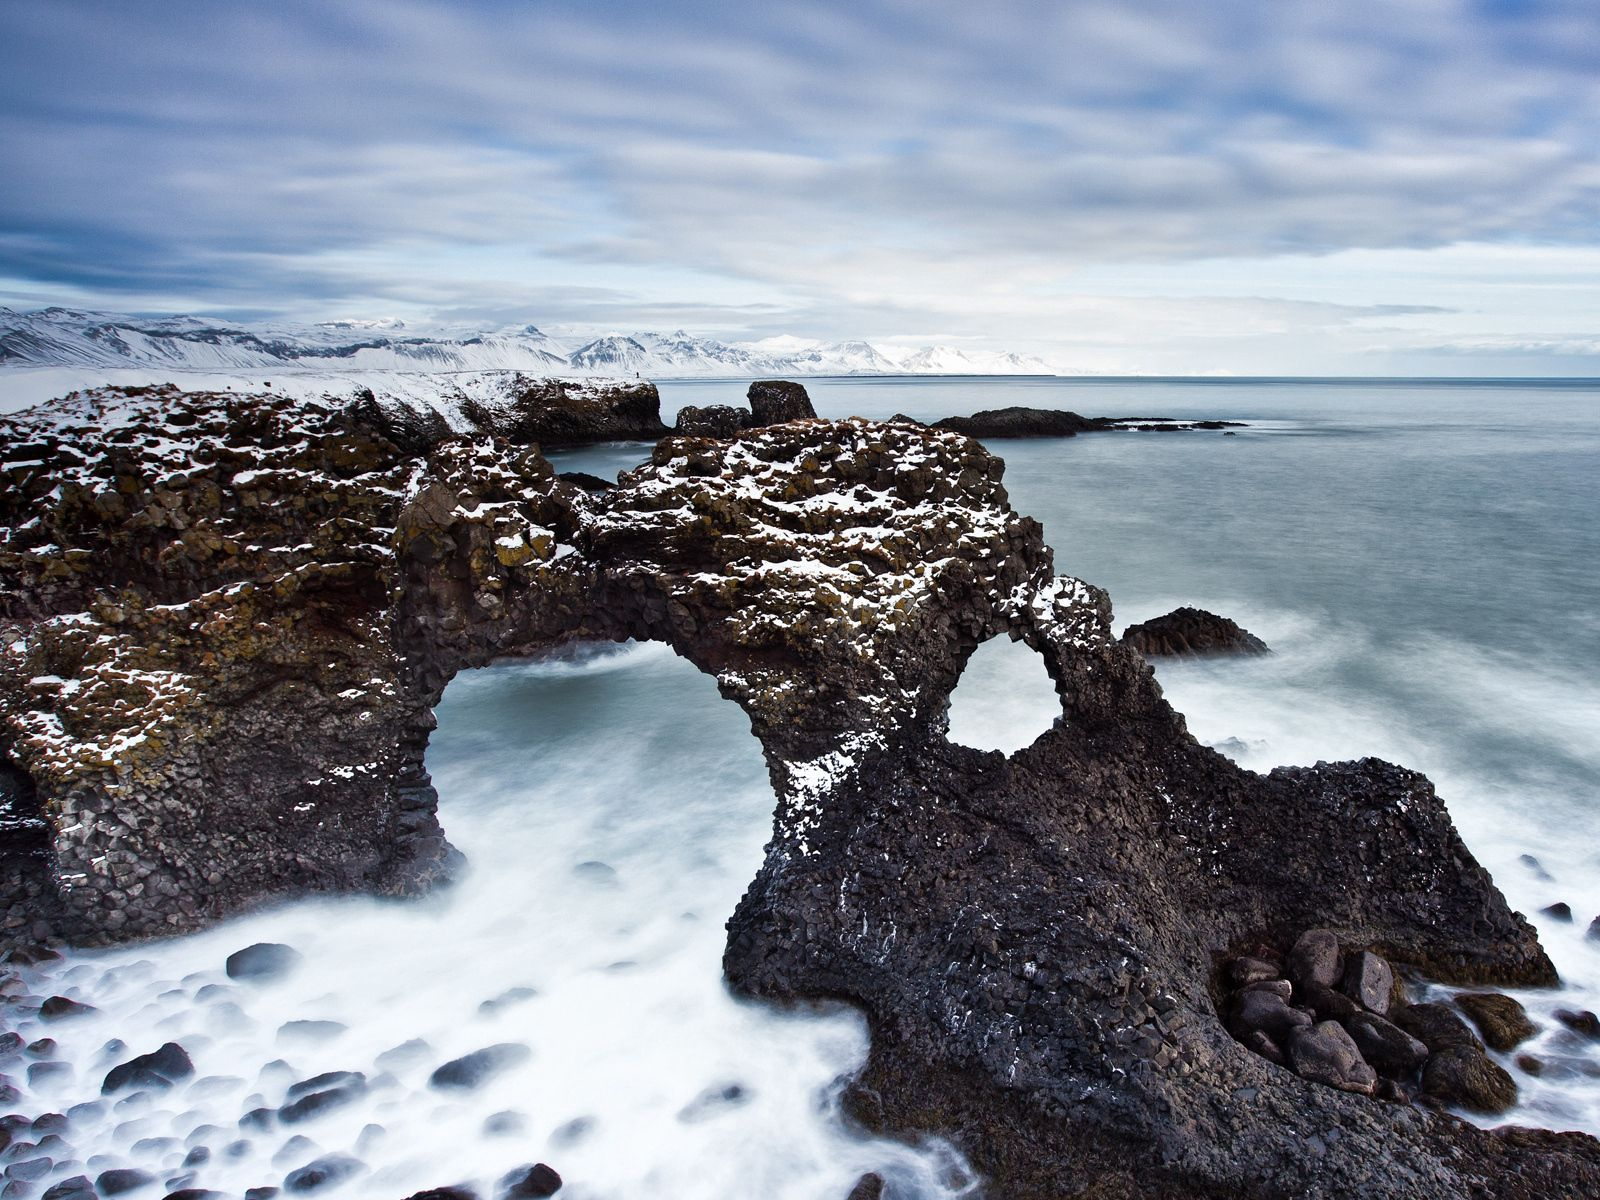 Download wallpaper 1600x1200 reeves arches stony coast cold 1600x1200